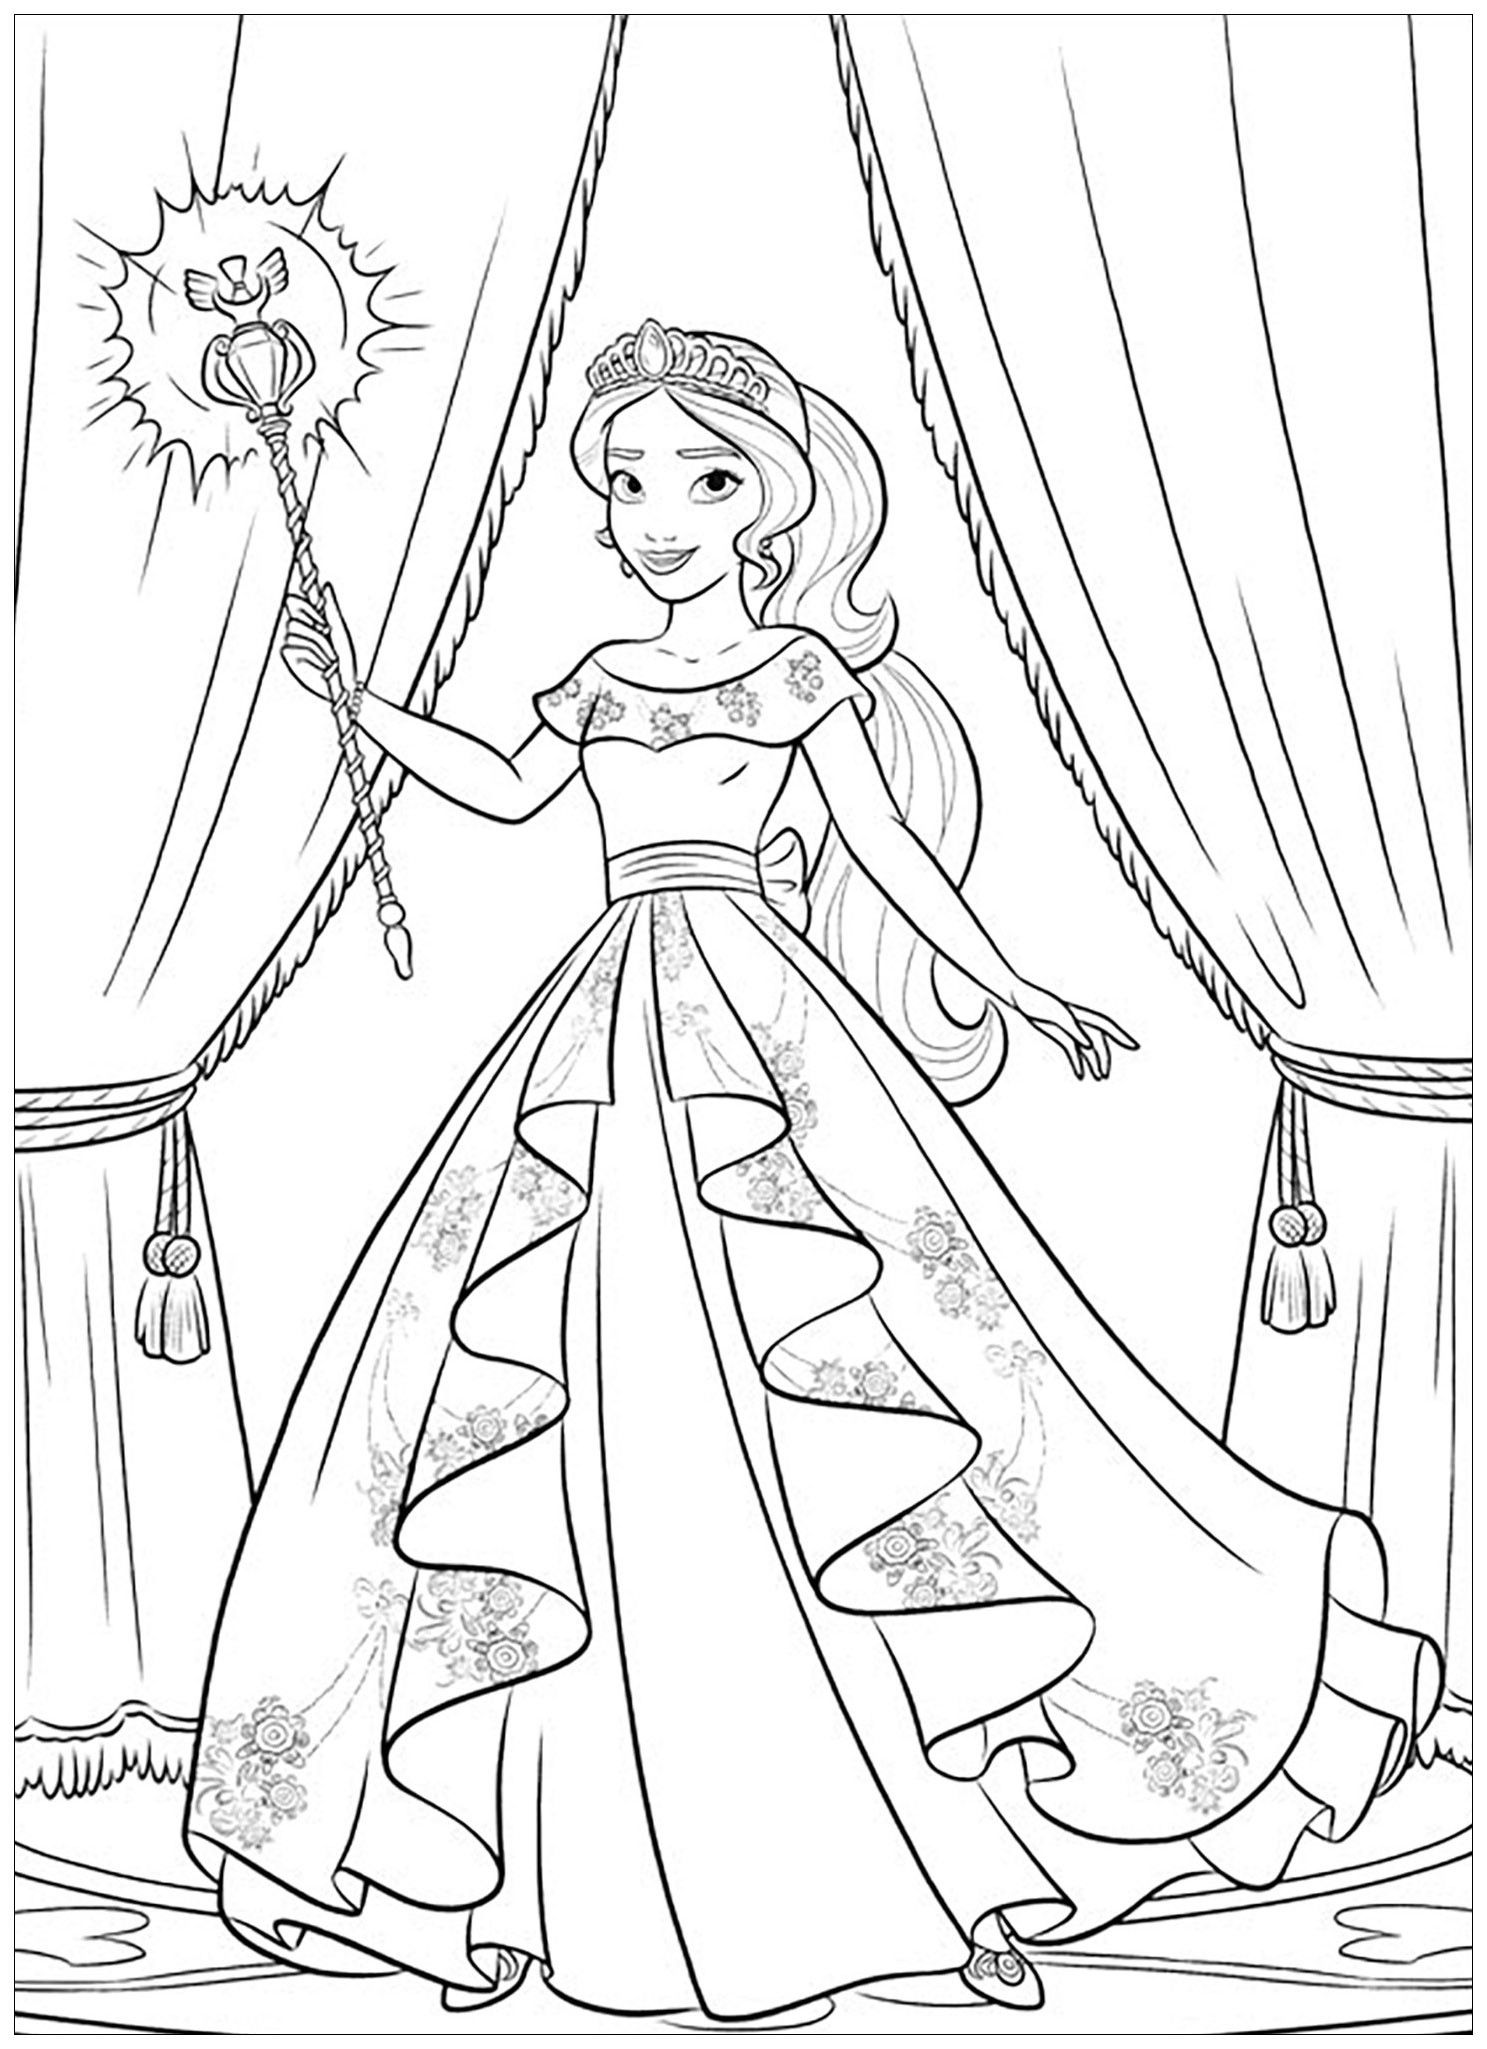 Princess Elena Coloring Page Youngandtae Com Disney Coloring Pages Disney Princess Coloring Pages Barbie Coloring Pages